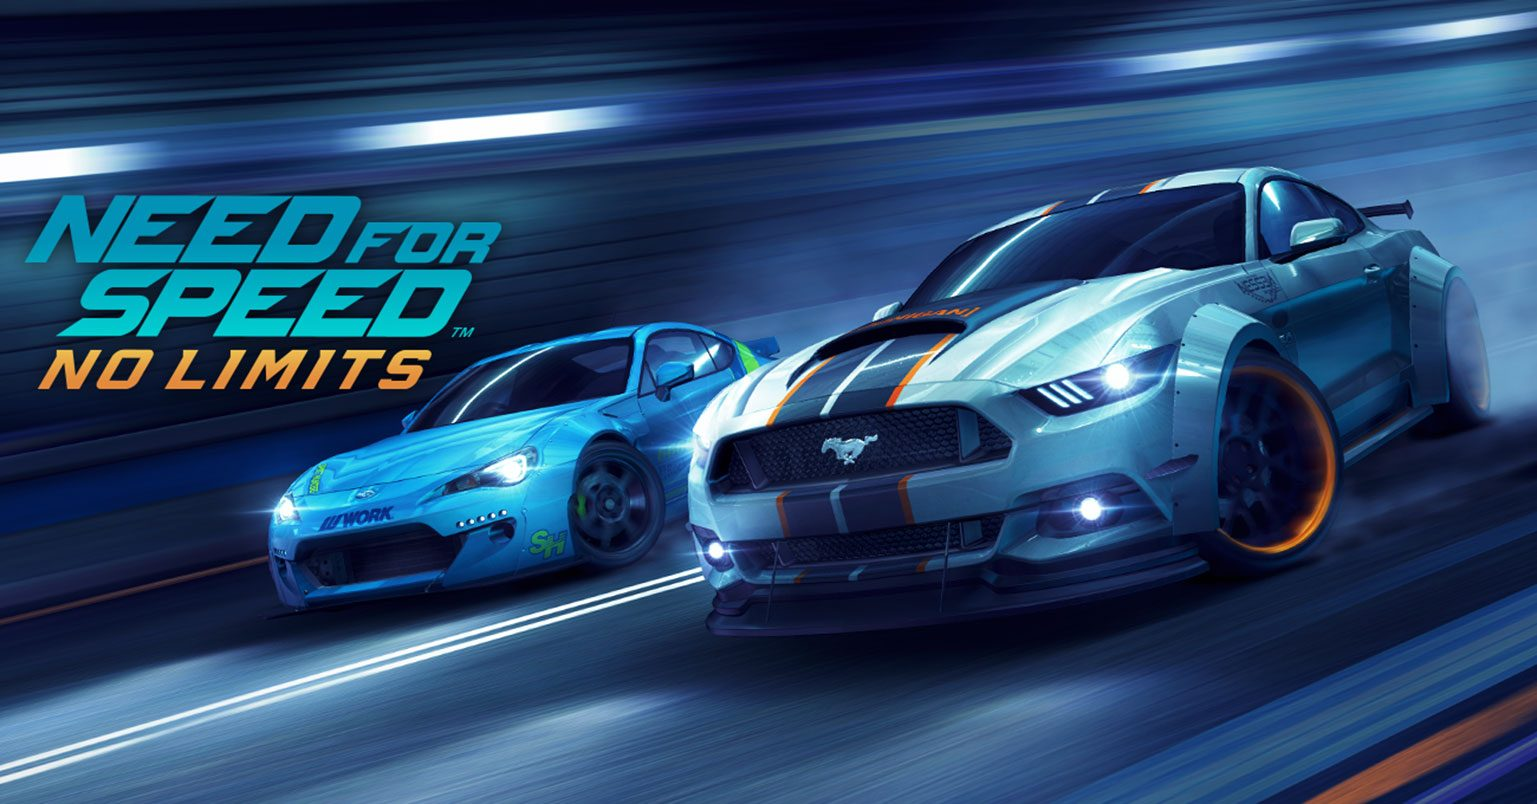 Need For Speed Wallpapers Movie Hq Need For Speed Pictures 4k Wallpapers 2019